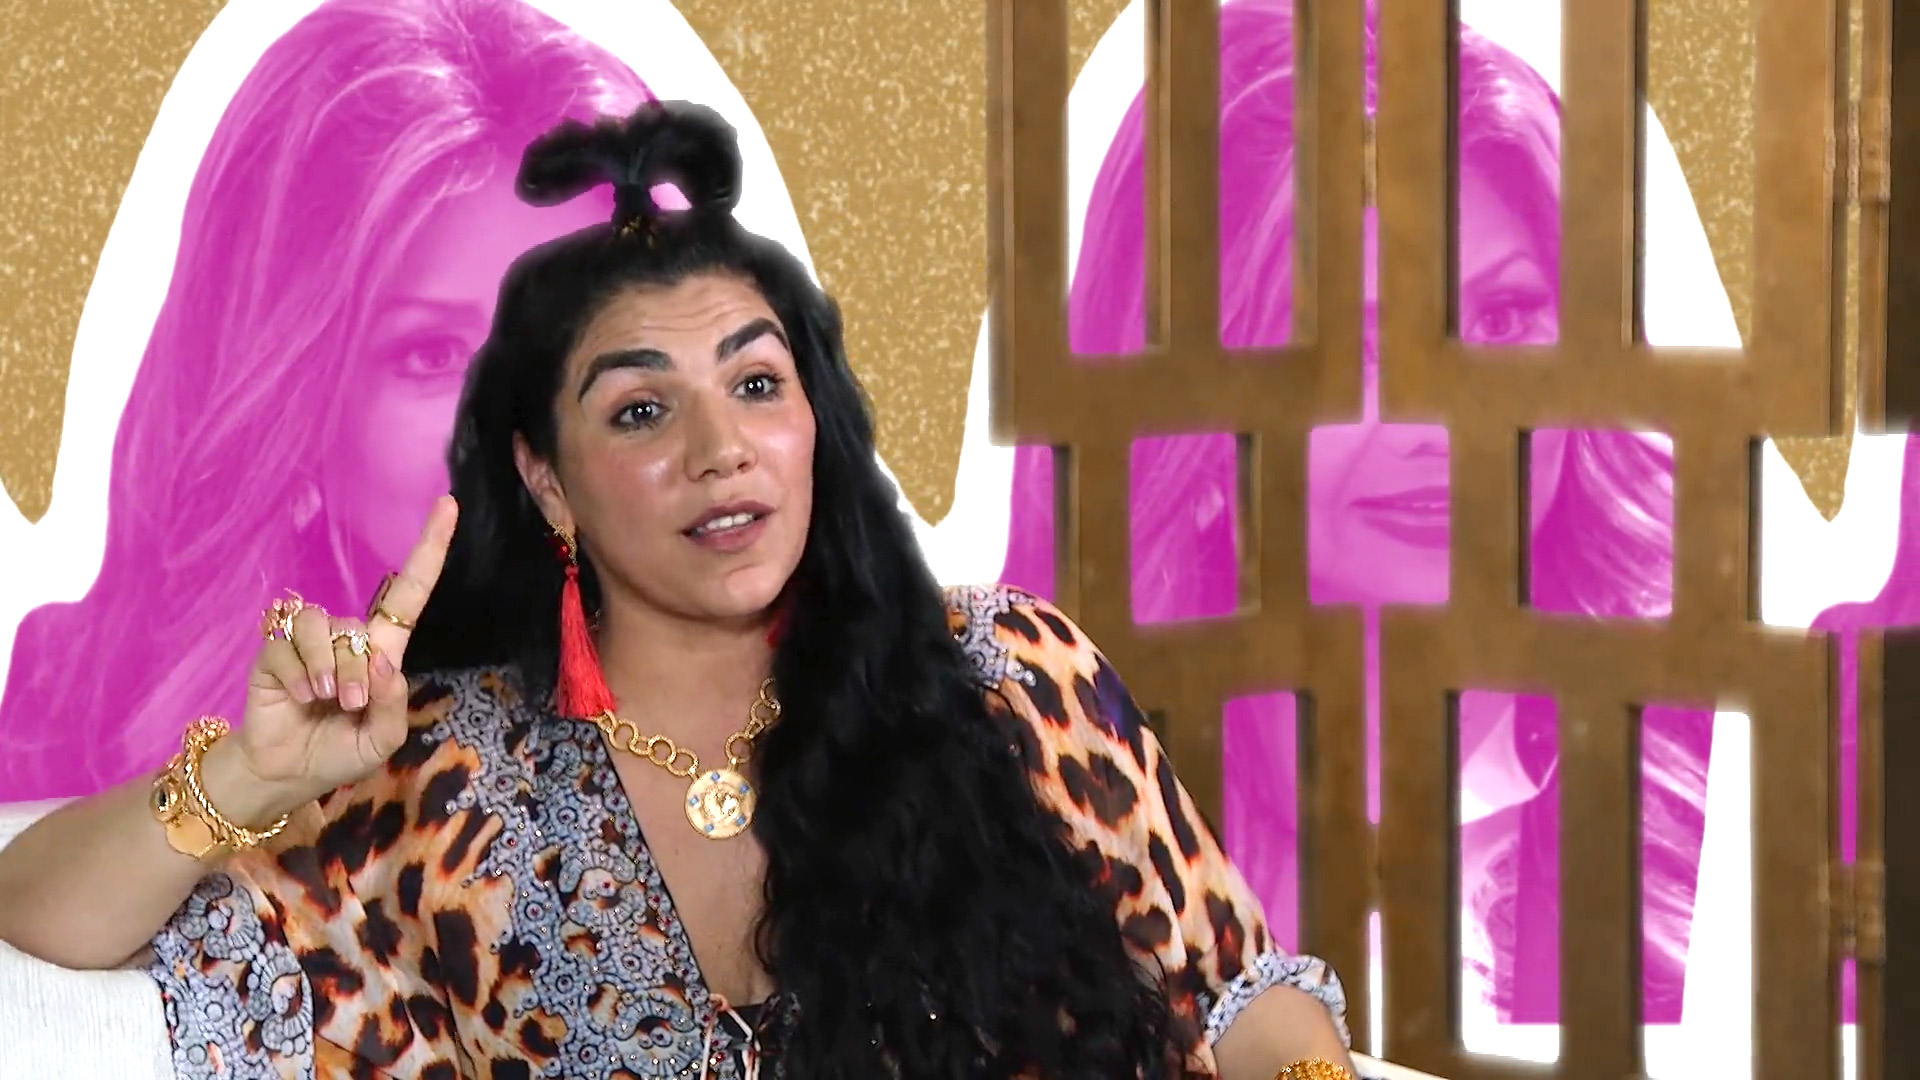 Shahs After Show: What's LaToya Jackson Like as an Auntie?